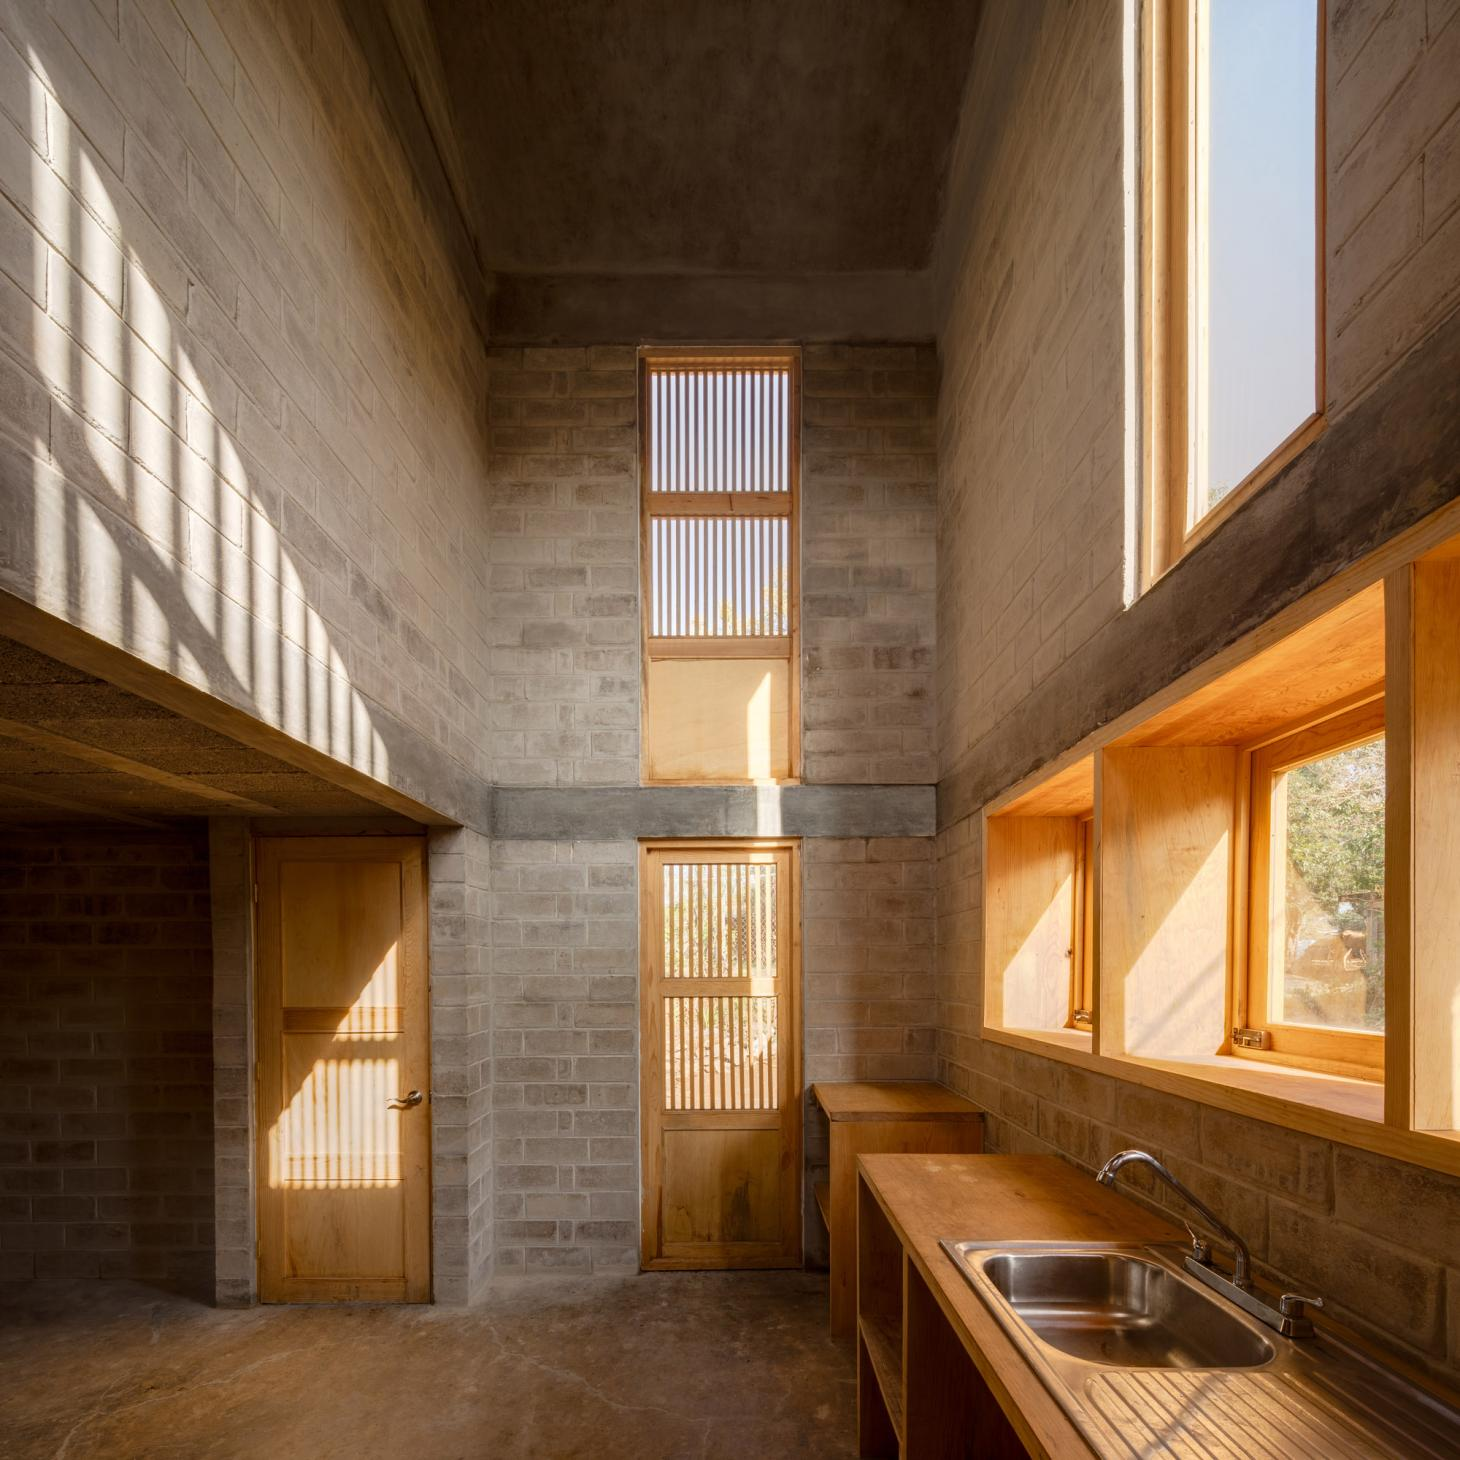 the bare interior of Casa Eva, a low cost housing designed by Fernanda Canales